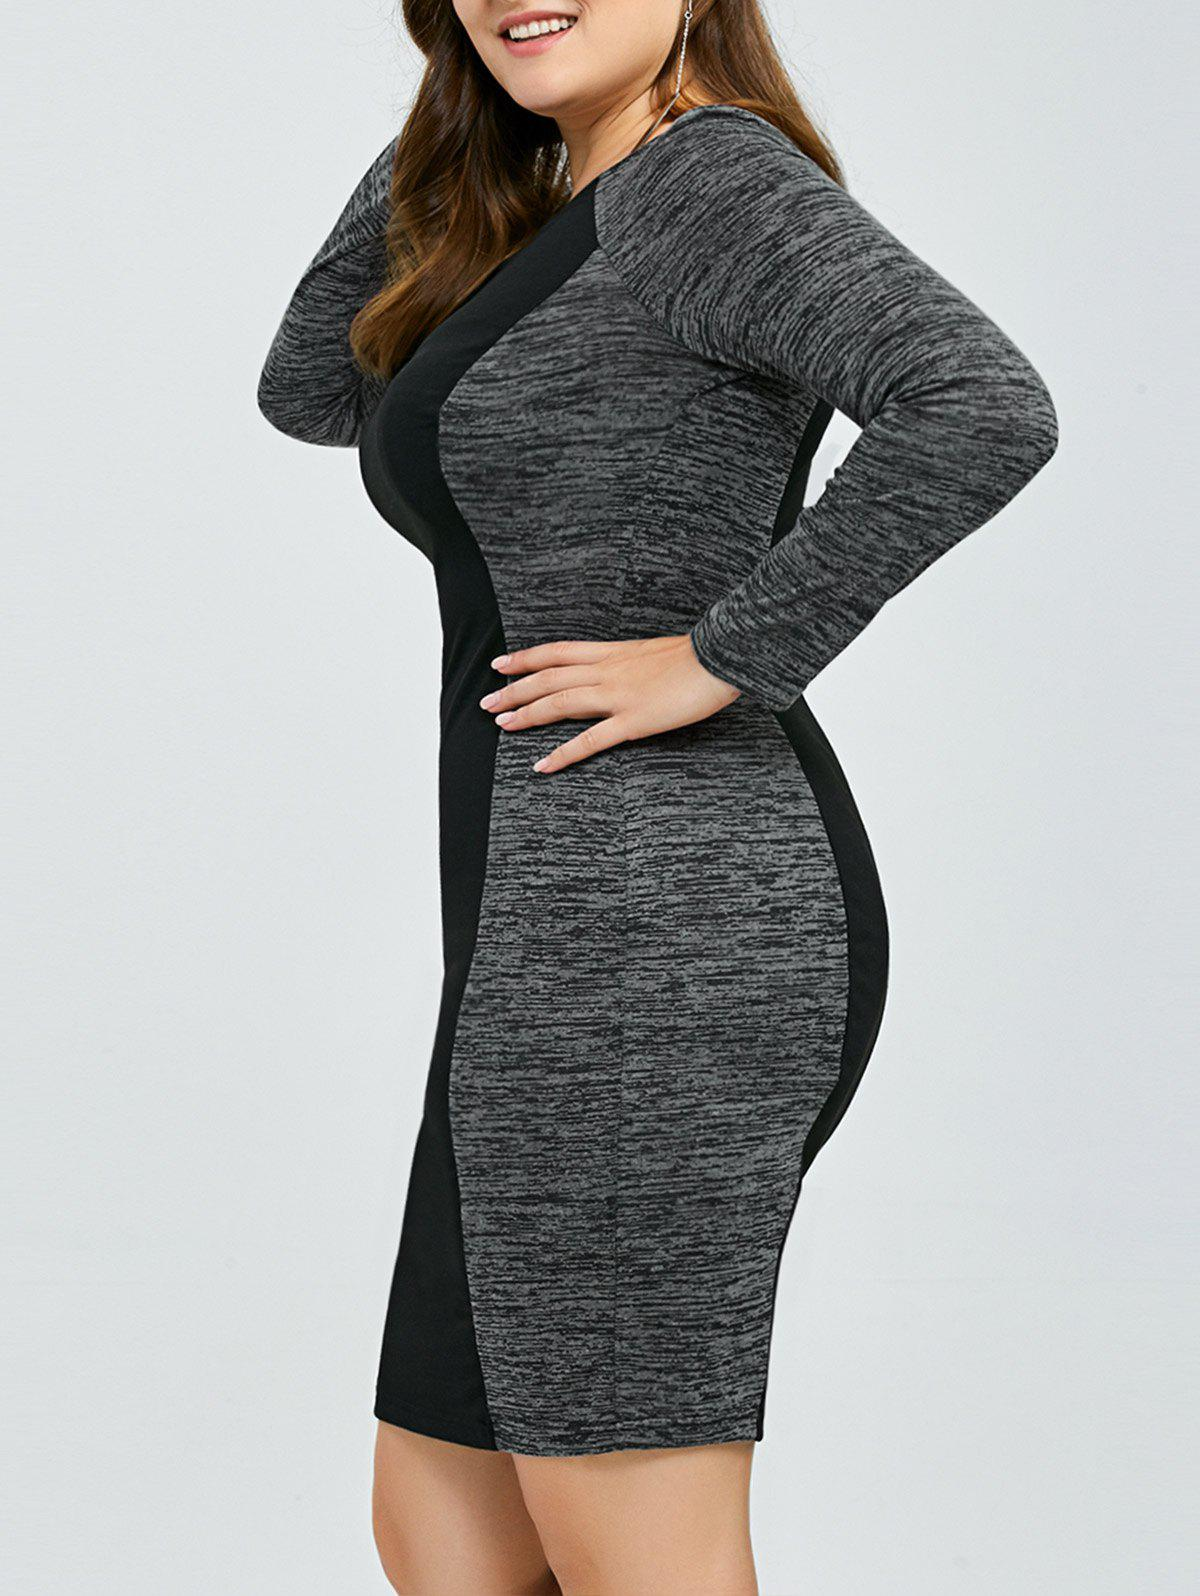 Heather Trim Sheath Dress - BLACK/GREY 3XL